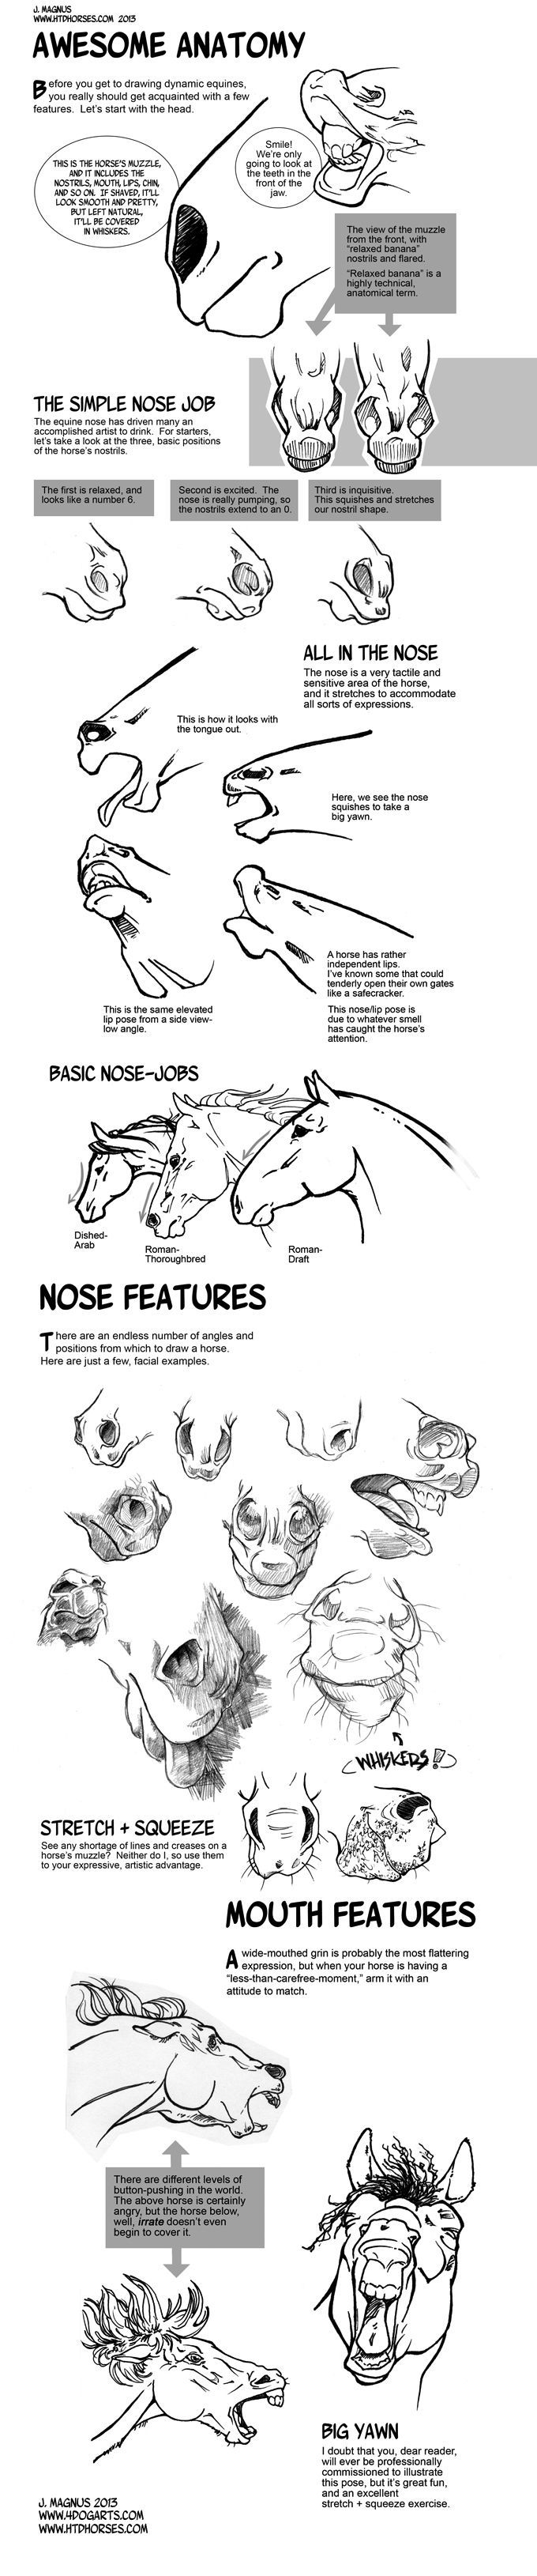 27 best Drawing images on Pinterest | Drawing techniques, How to ...